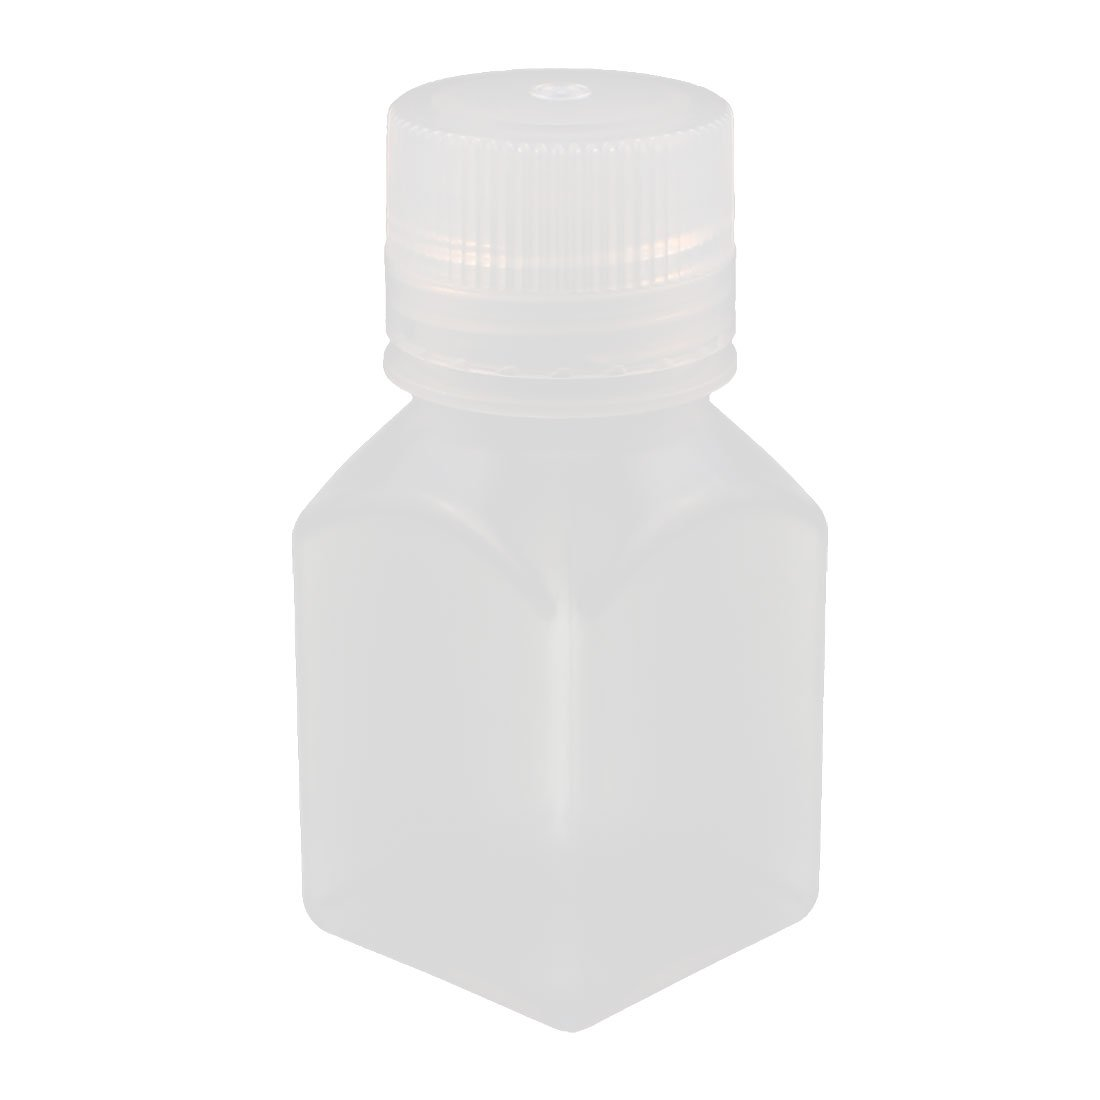 sourcingmap® 100ml PP Square Wide Mouth Seal Reagent Bottle Chemical Sample Bottle a16082700ux0334